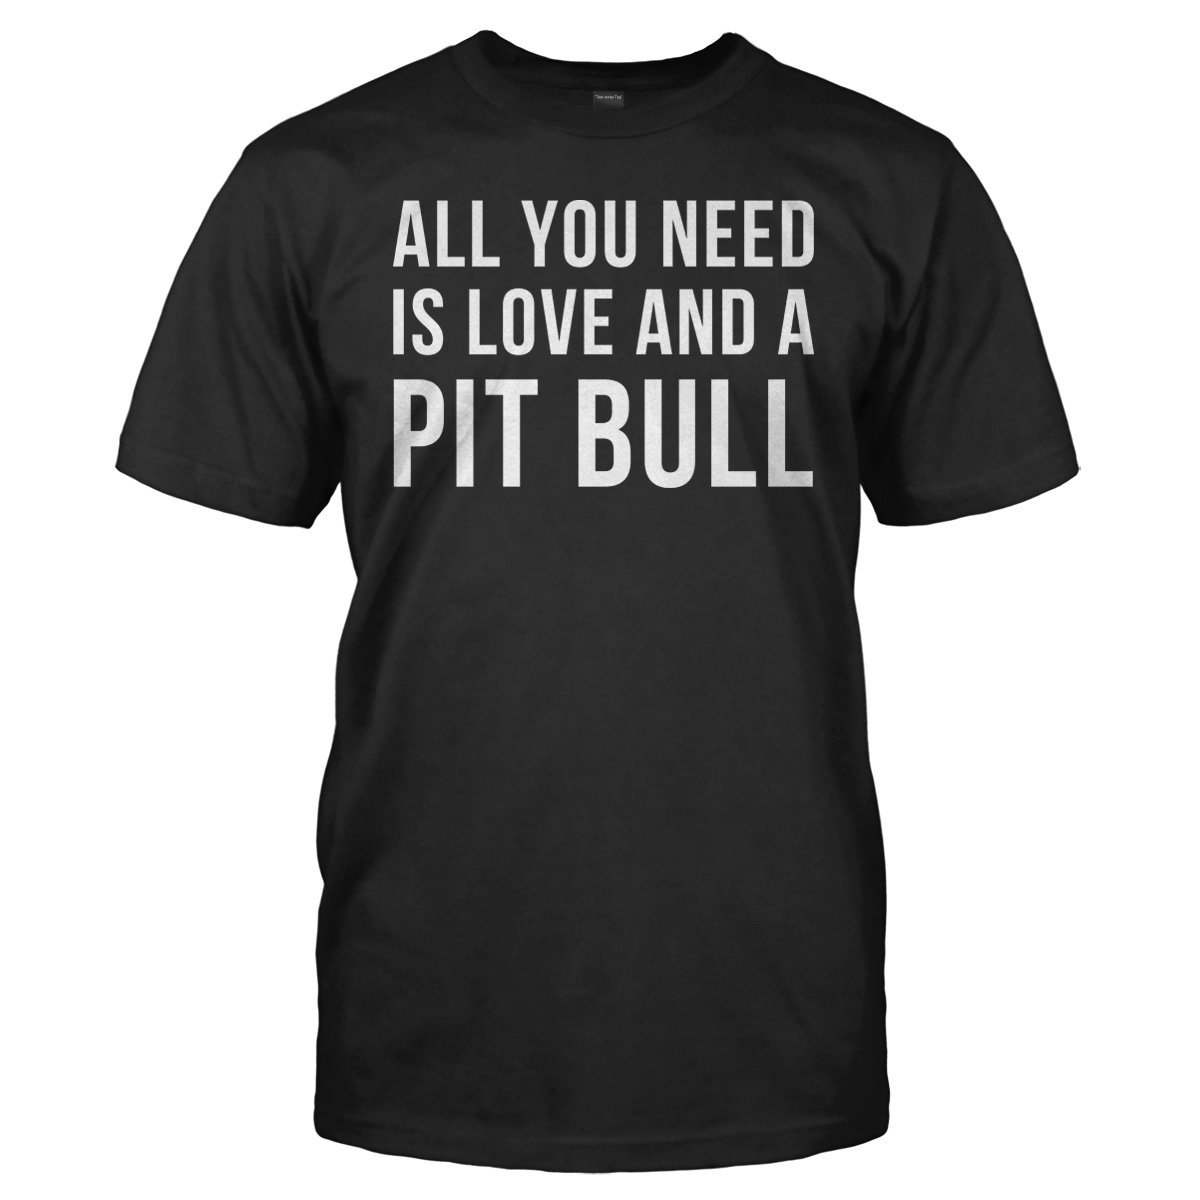 All You Need Is Love And A Pit Bull - T Shirt